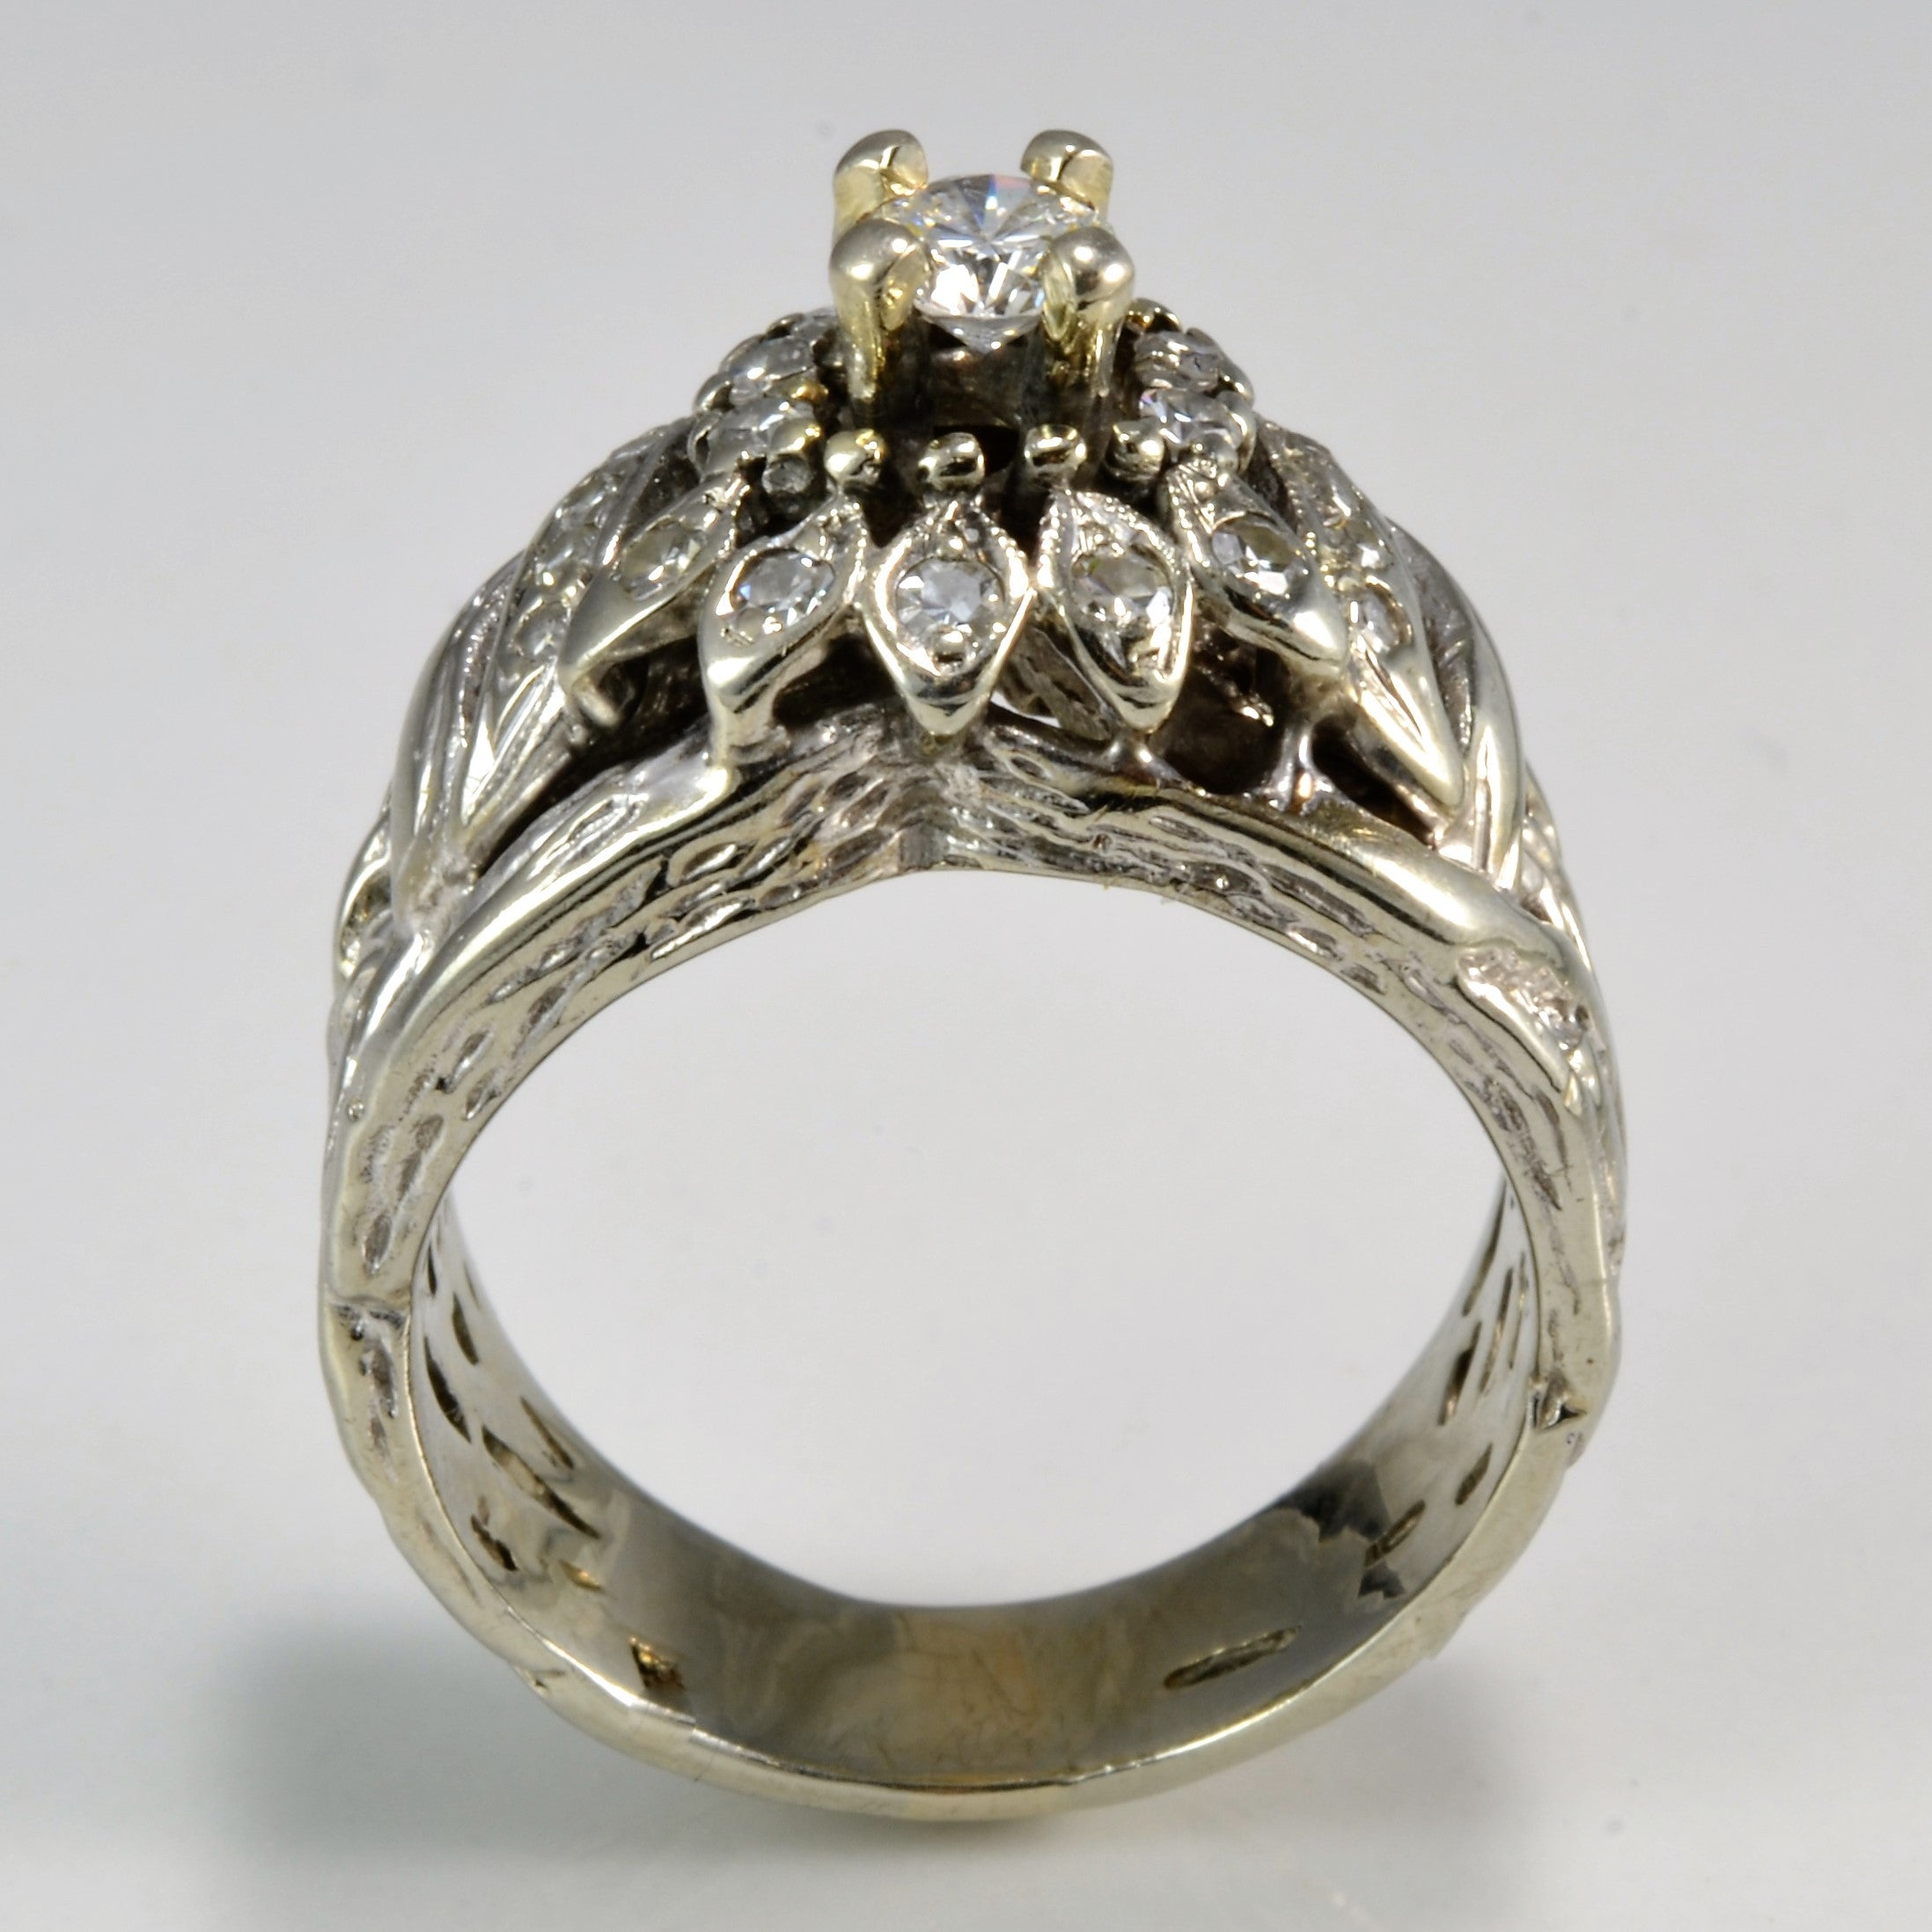 Retro Era Filigree Diamond Engagement Ring | 0.56 ctw, SZ 7.75 |